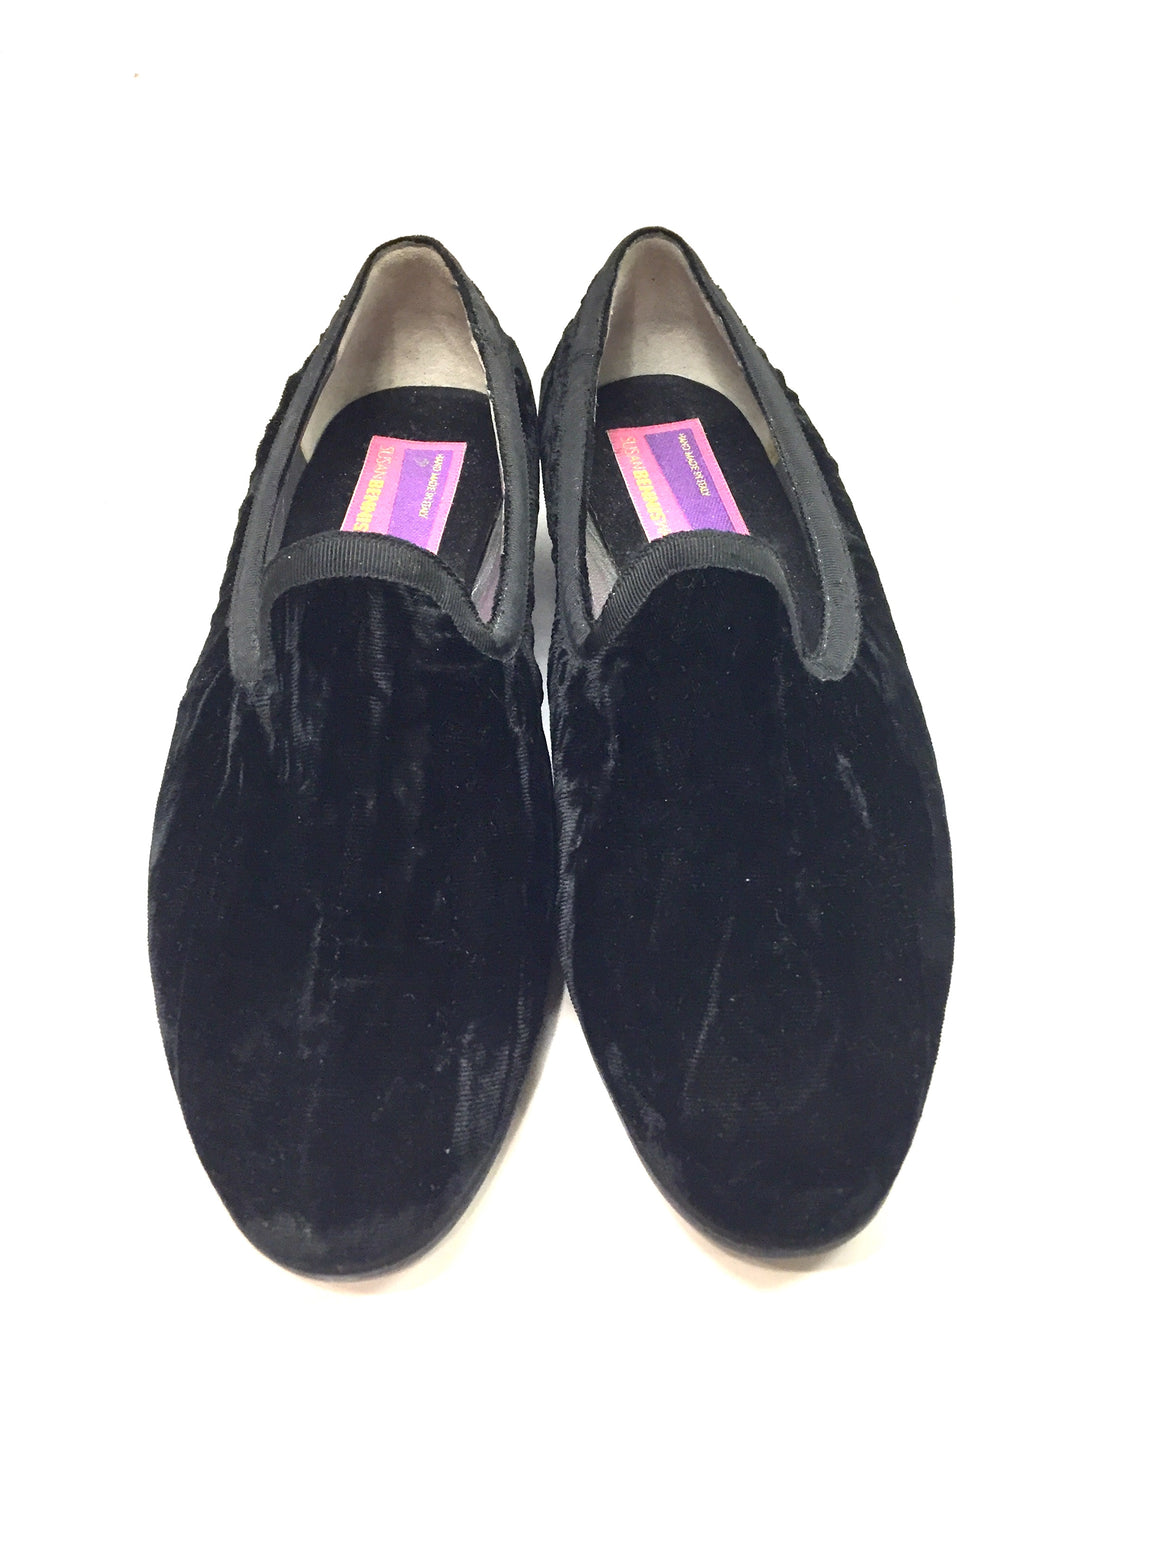 Vintage SUSAN BENIS/WARREN EDWARDS Black Crushed Velvet Smoking Slip-On Flats Sz9